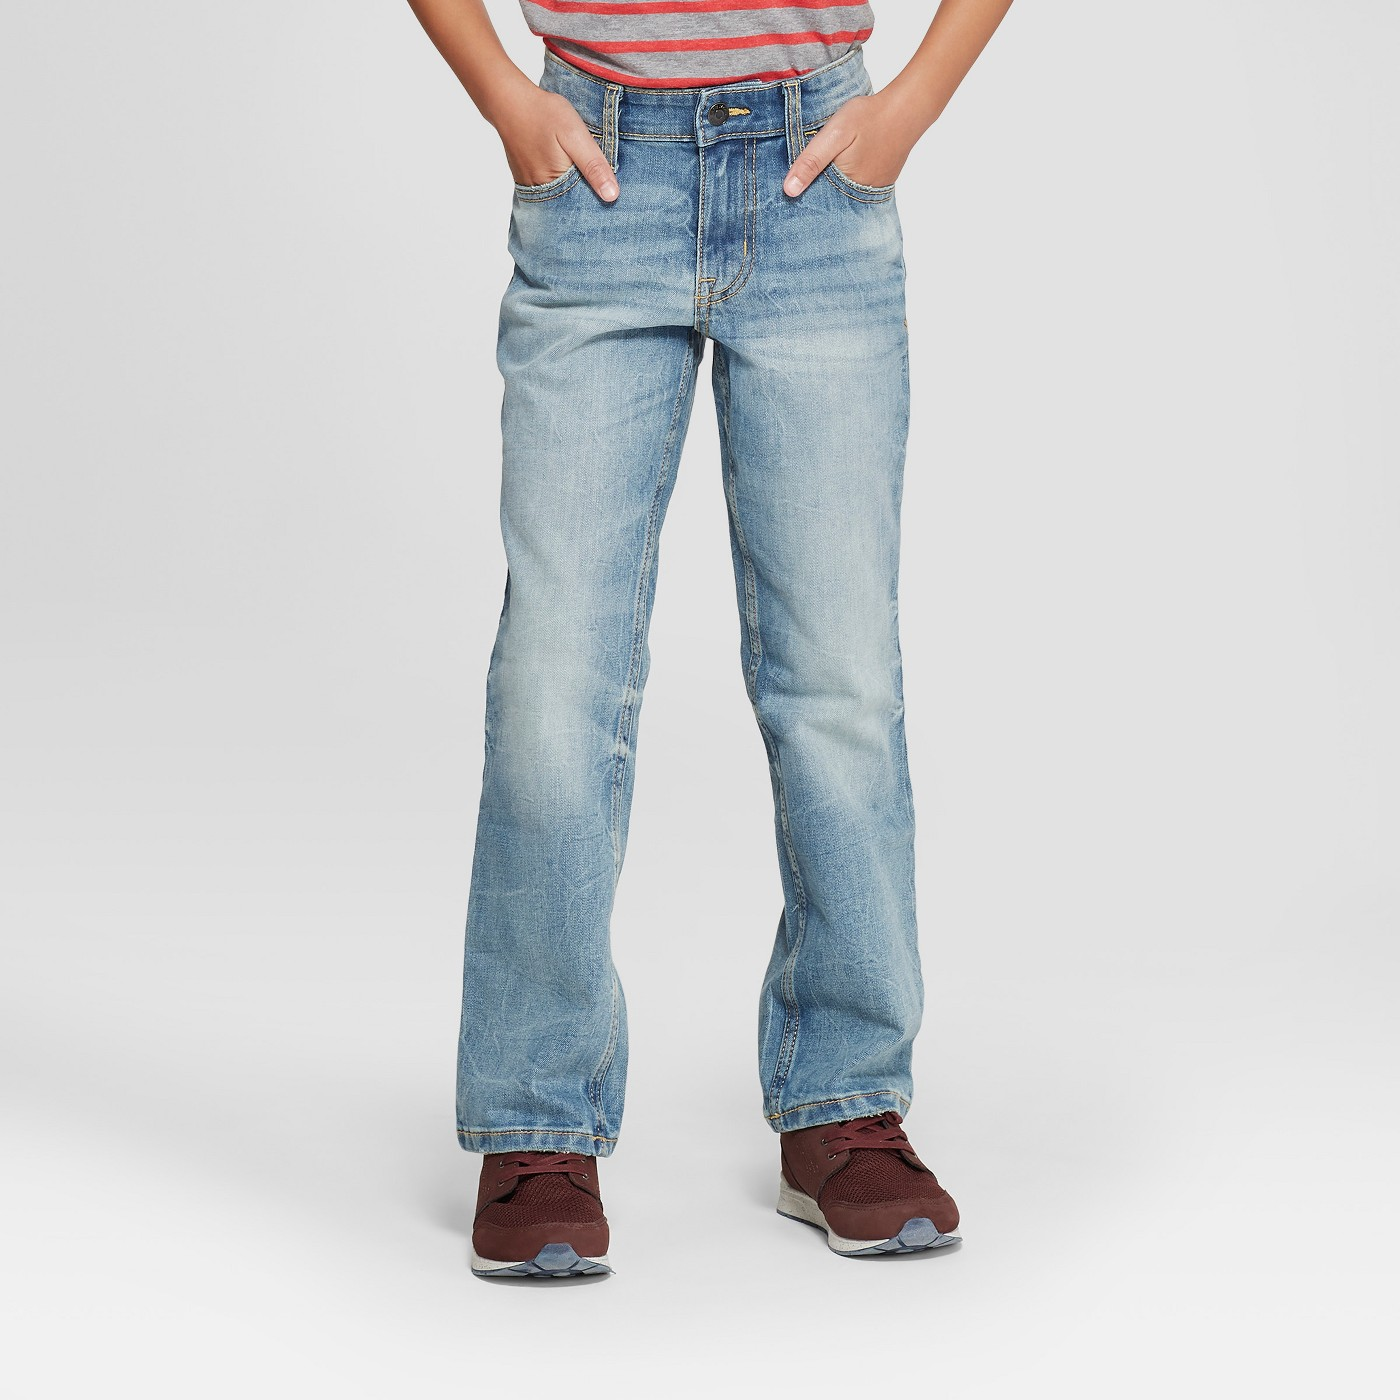 Boys' Light Wash Straight-Leg Jeans - $10